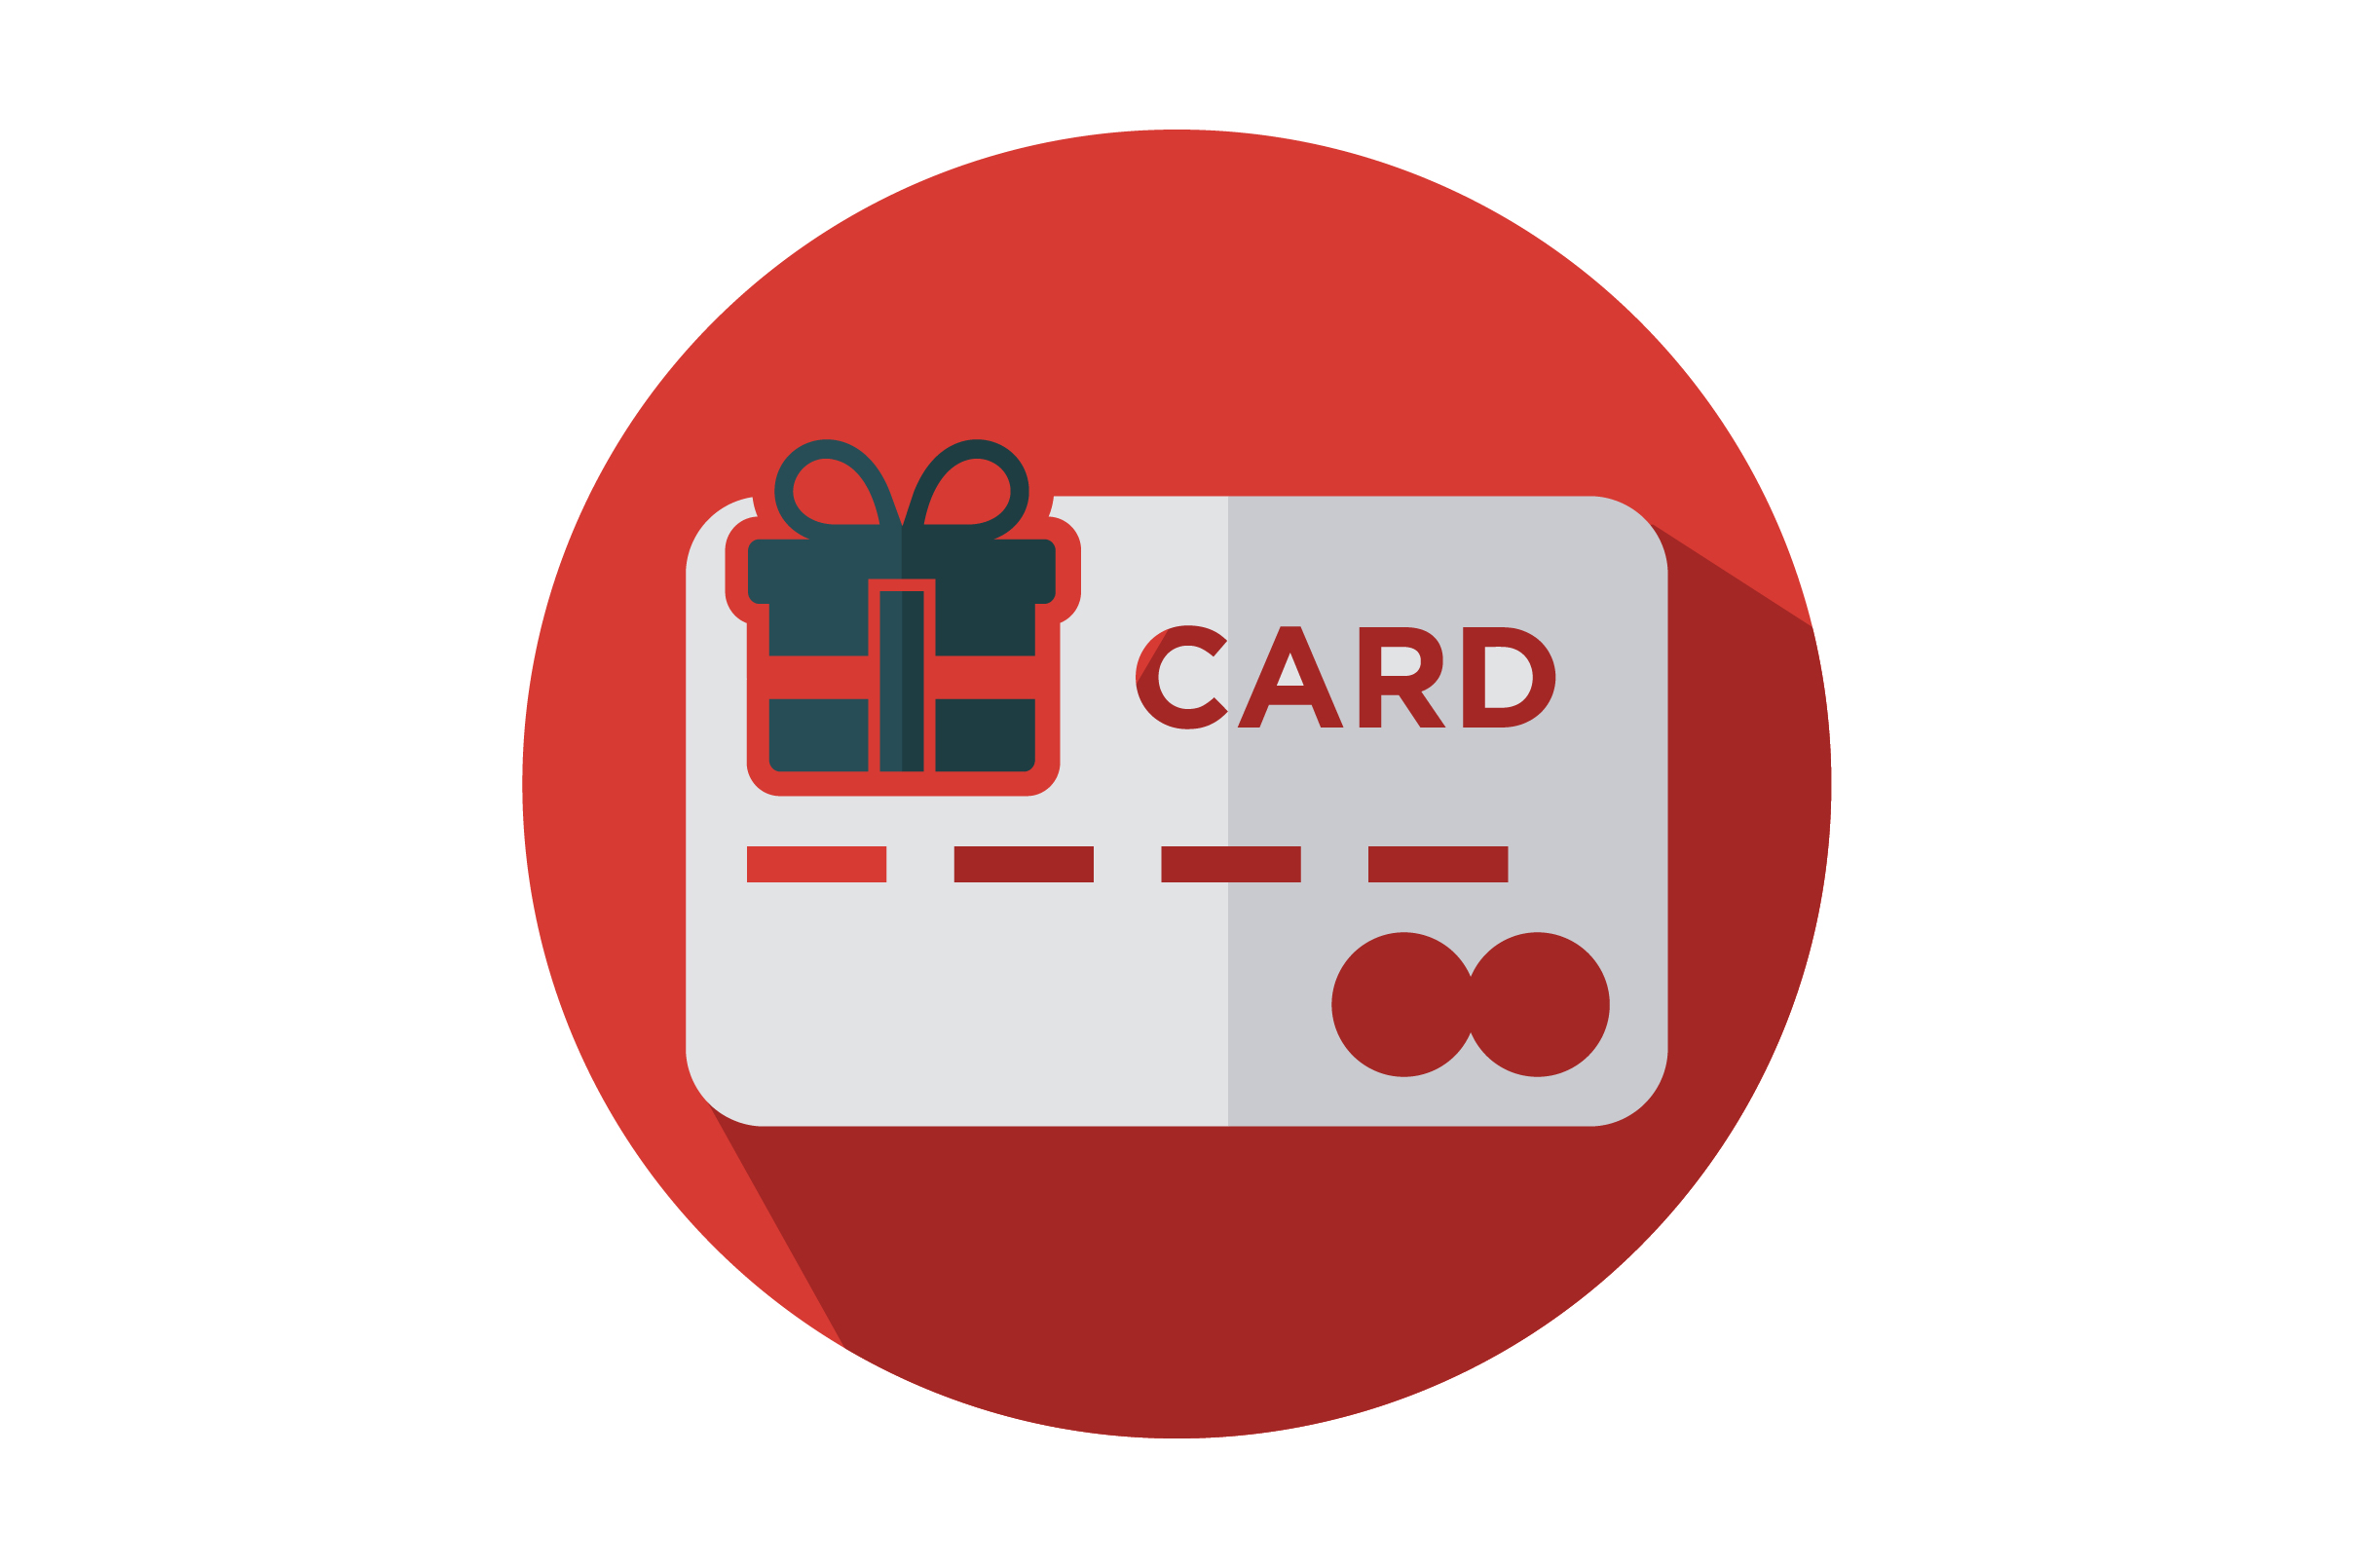 Download Free Credit Card With Gift Box Flat Icon Graphic By Riduwan Molla for Cricut Explore, Silhouette and other cutting machines.